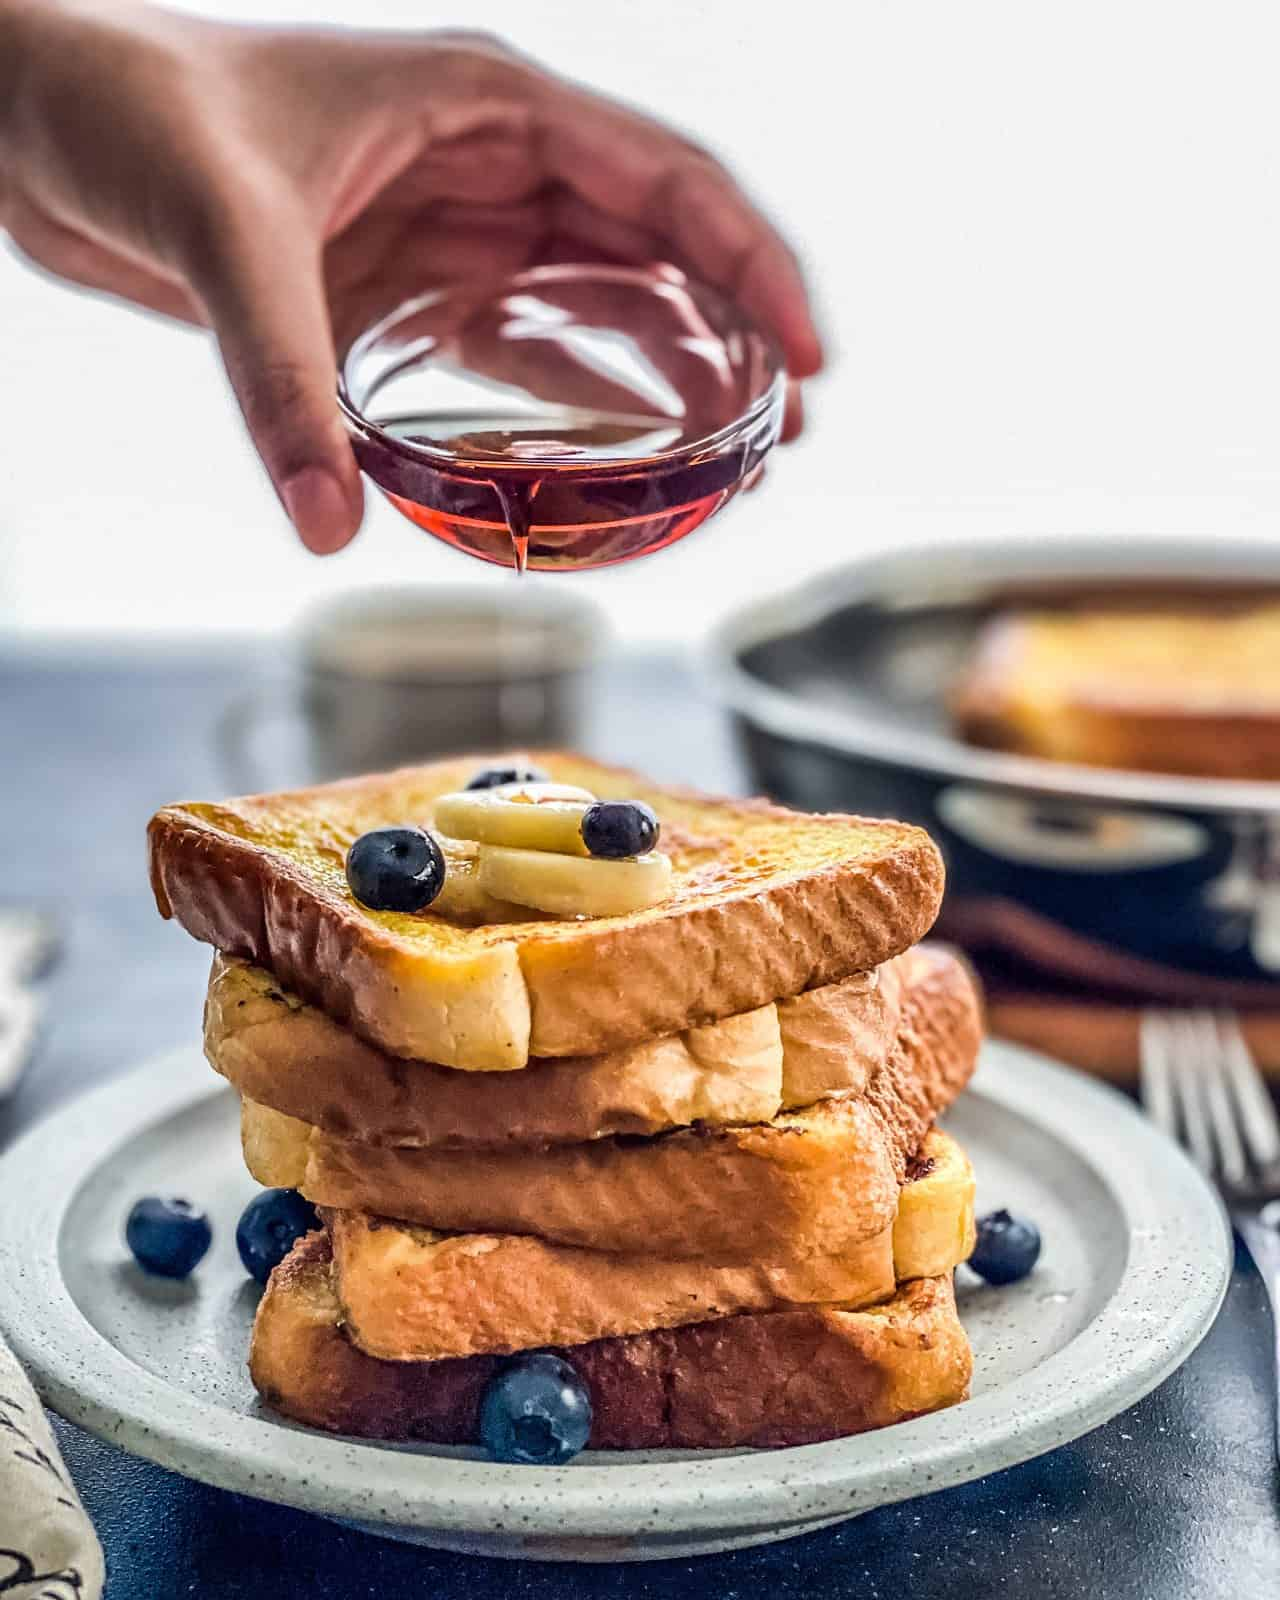 A fresh stack of french toast on a blue plate with a hand pouring syrup on top of the stack.